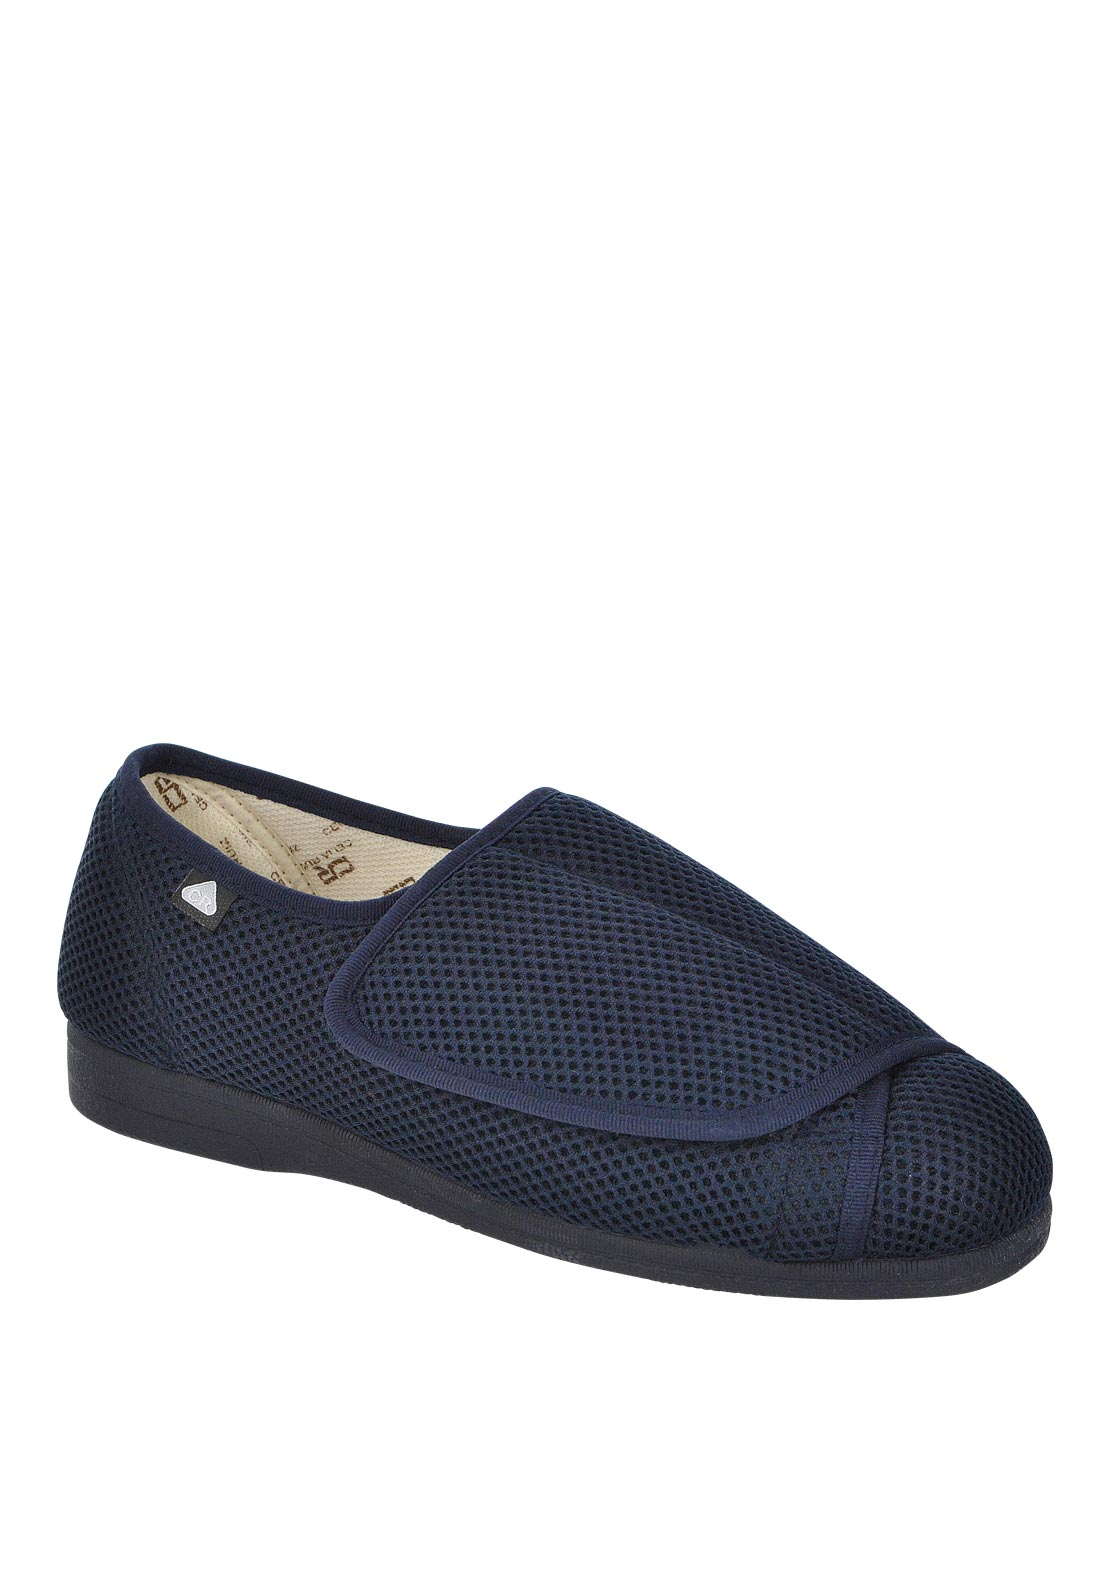 Celia Ruiz Mens Velcro Bedroom Slipper, Navy